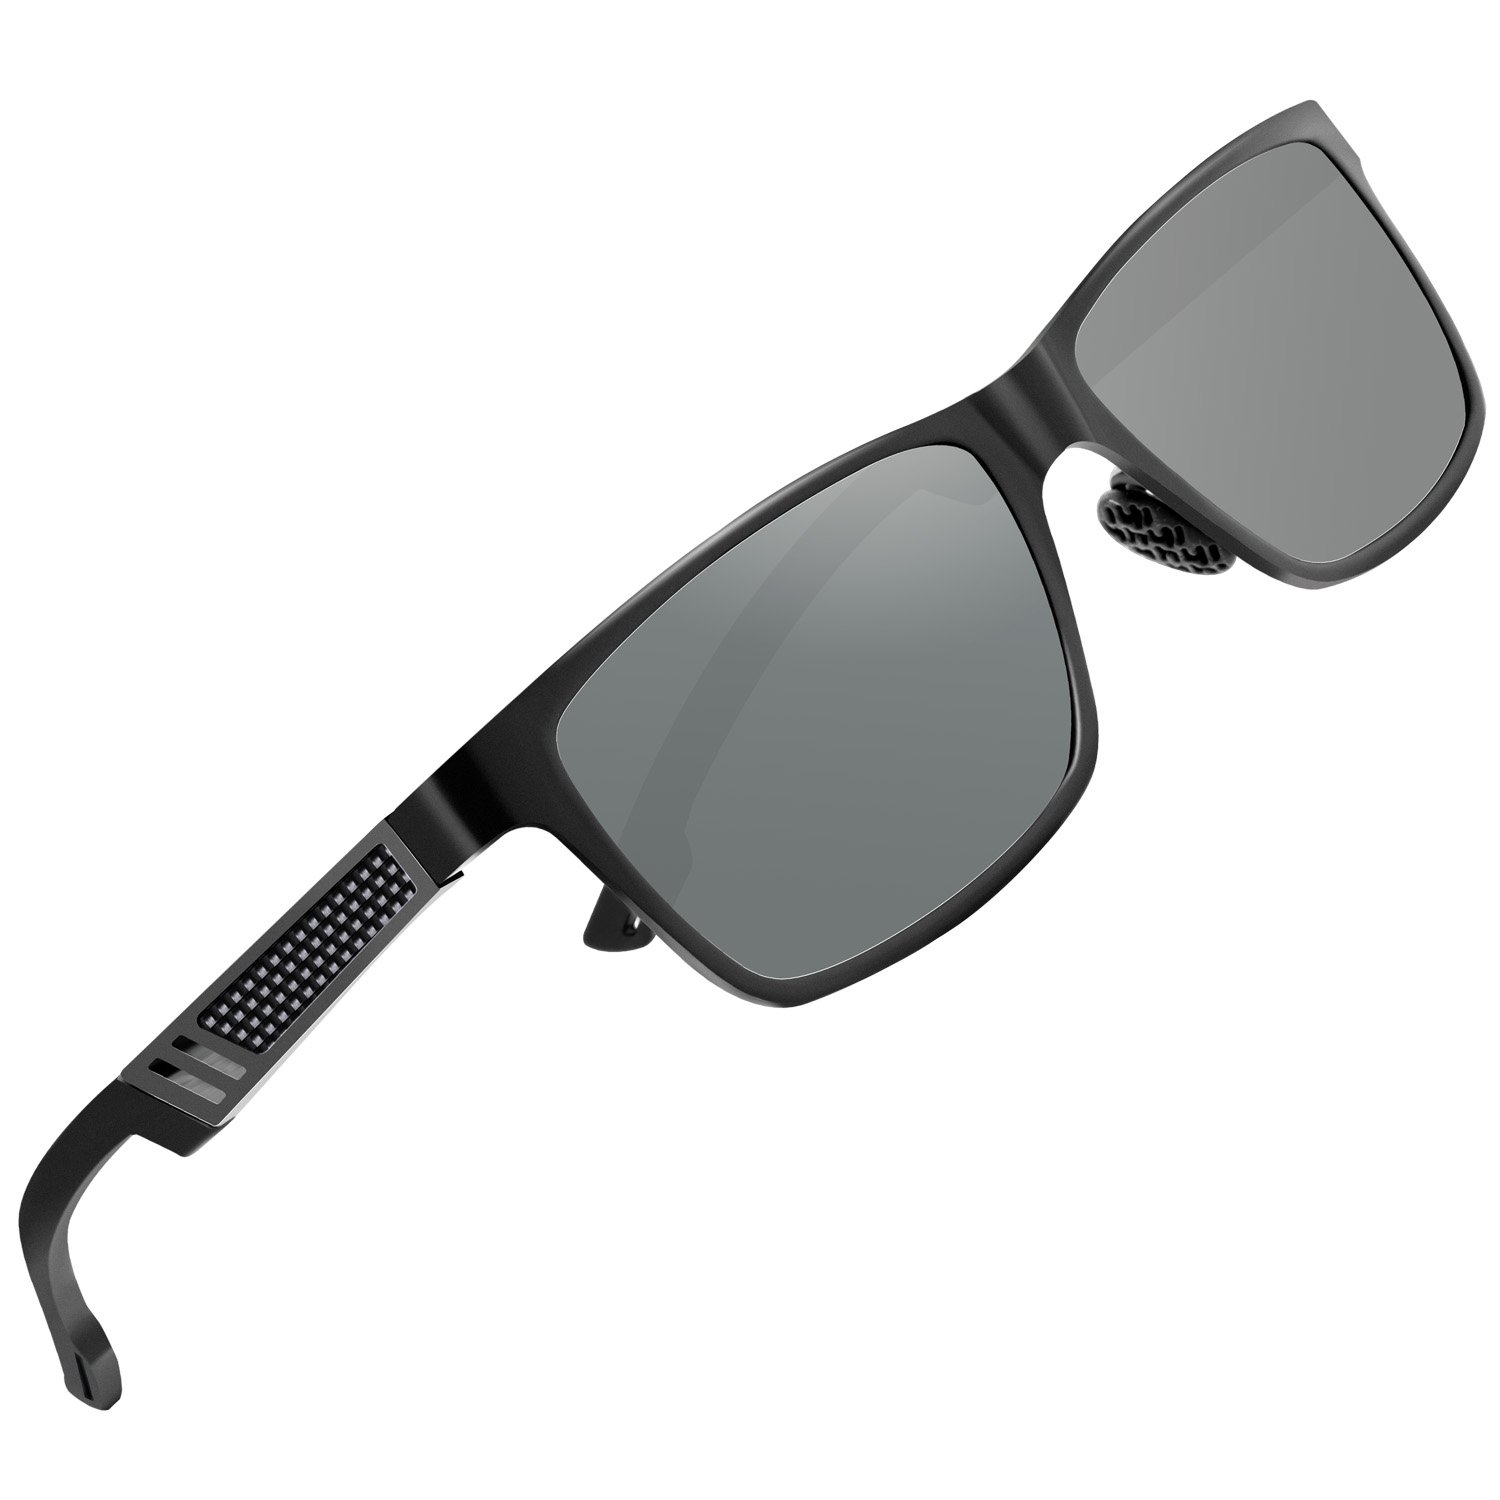 6a5898eaa4 Amazon.com  Sport Polarized Sunglasses Mens Hot Retro Wayfarer Glasses for  Driving Fishing Golf with Al-Mg Alloy Frame Black  Clothing